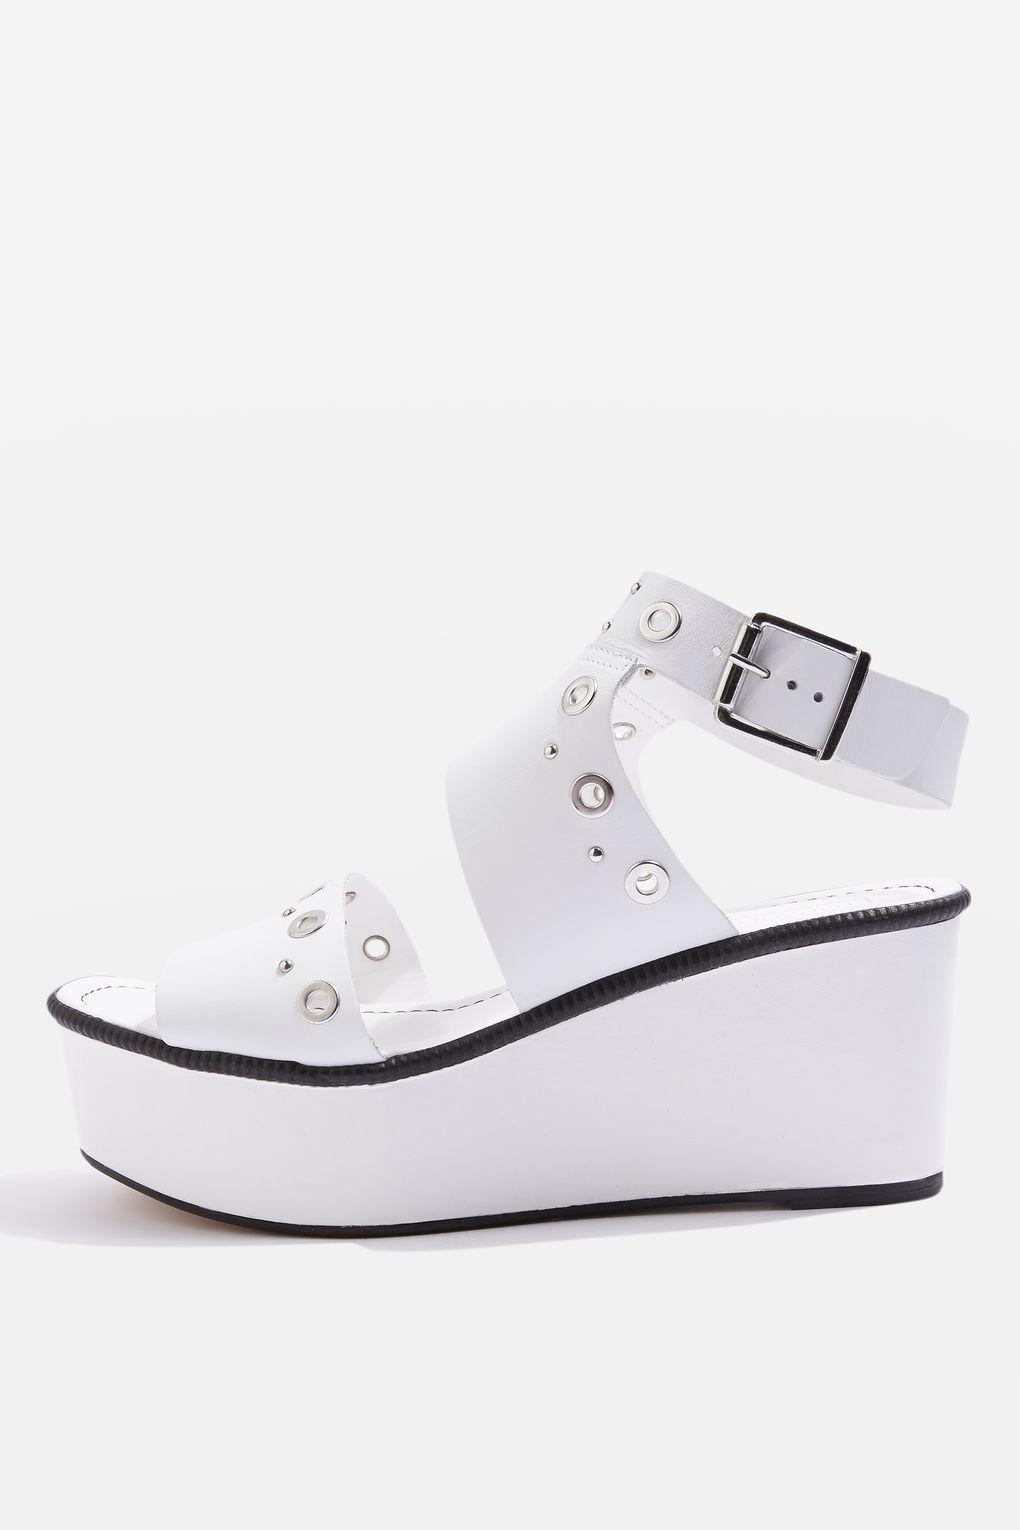 d79cce369516 Topshop Wizz Studded Platform Sandals in White